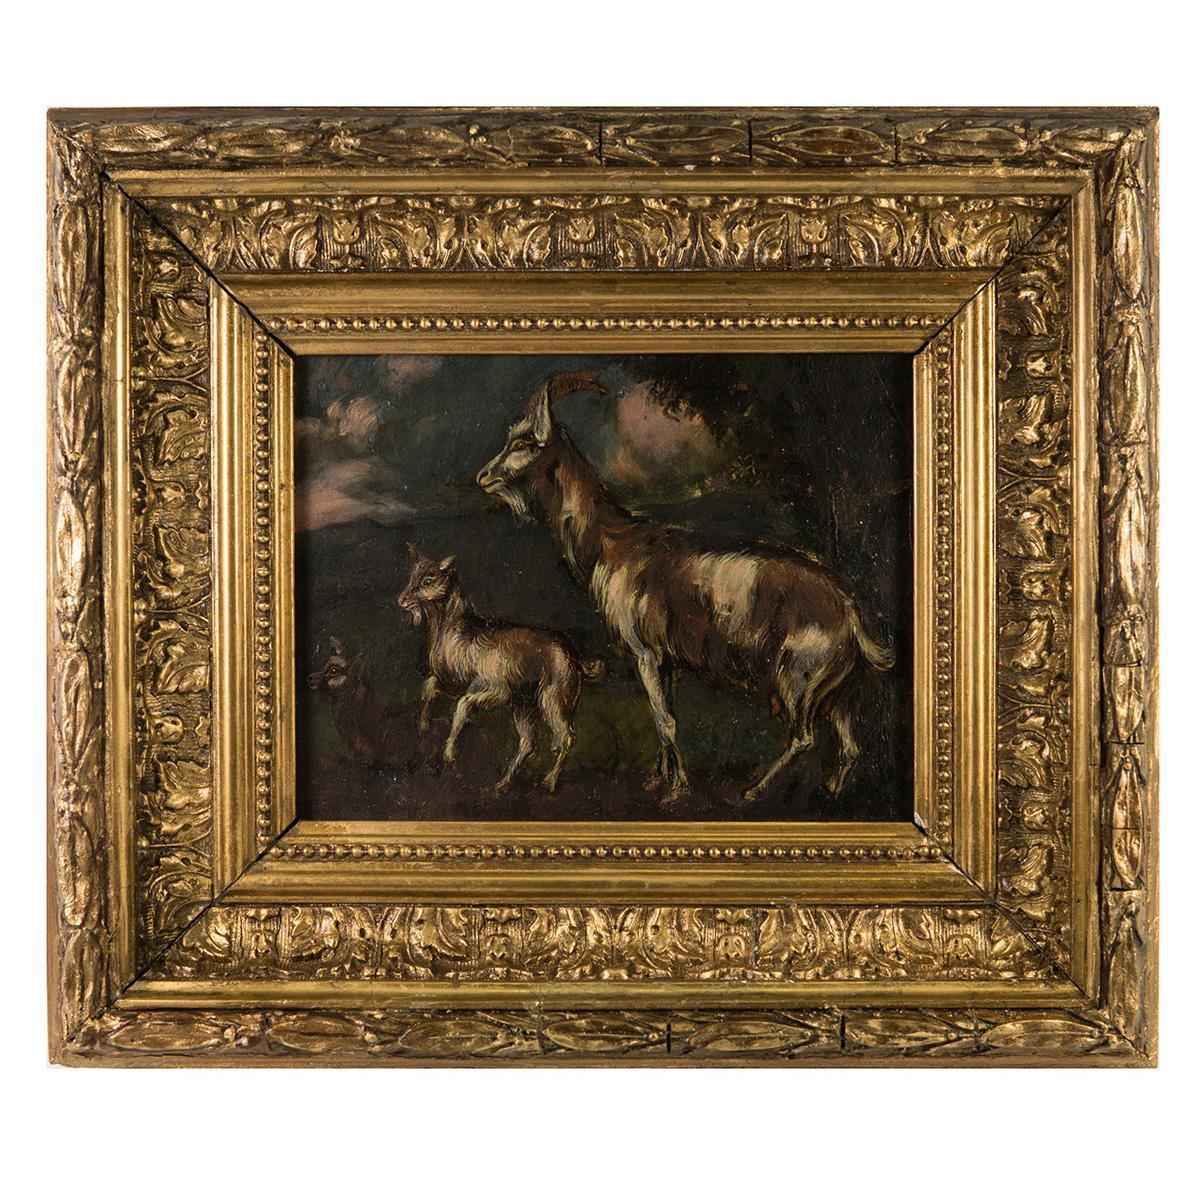 Antique French Oil Painting in Fontainebleau School Frame, Nanny and Kid Goat